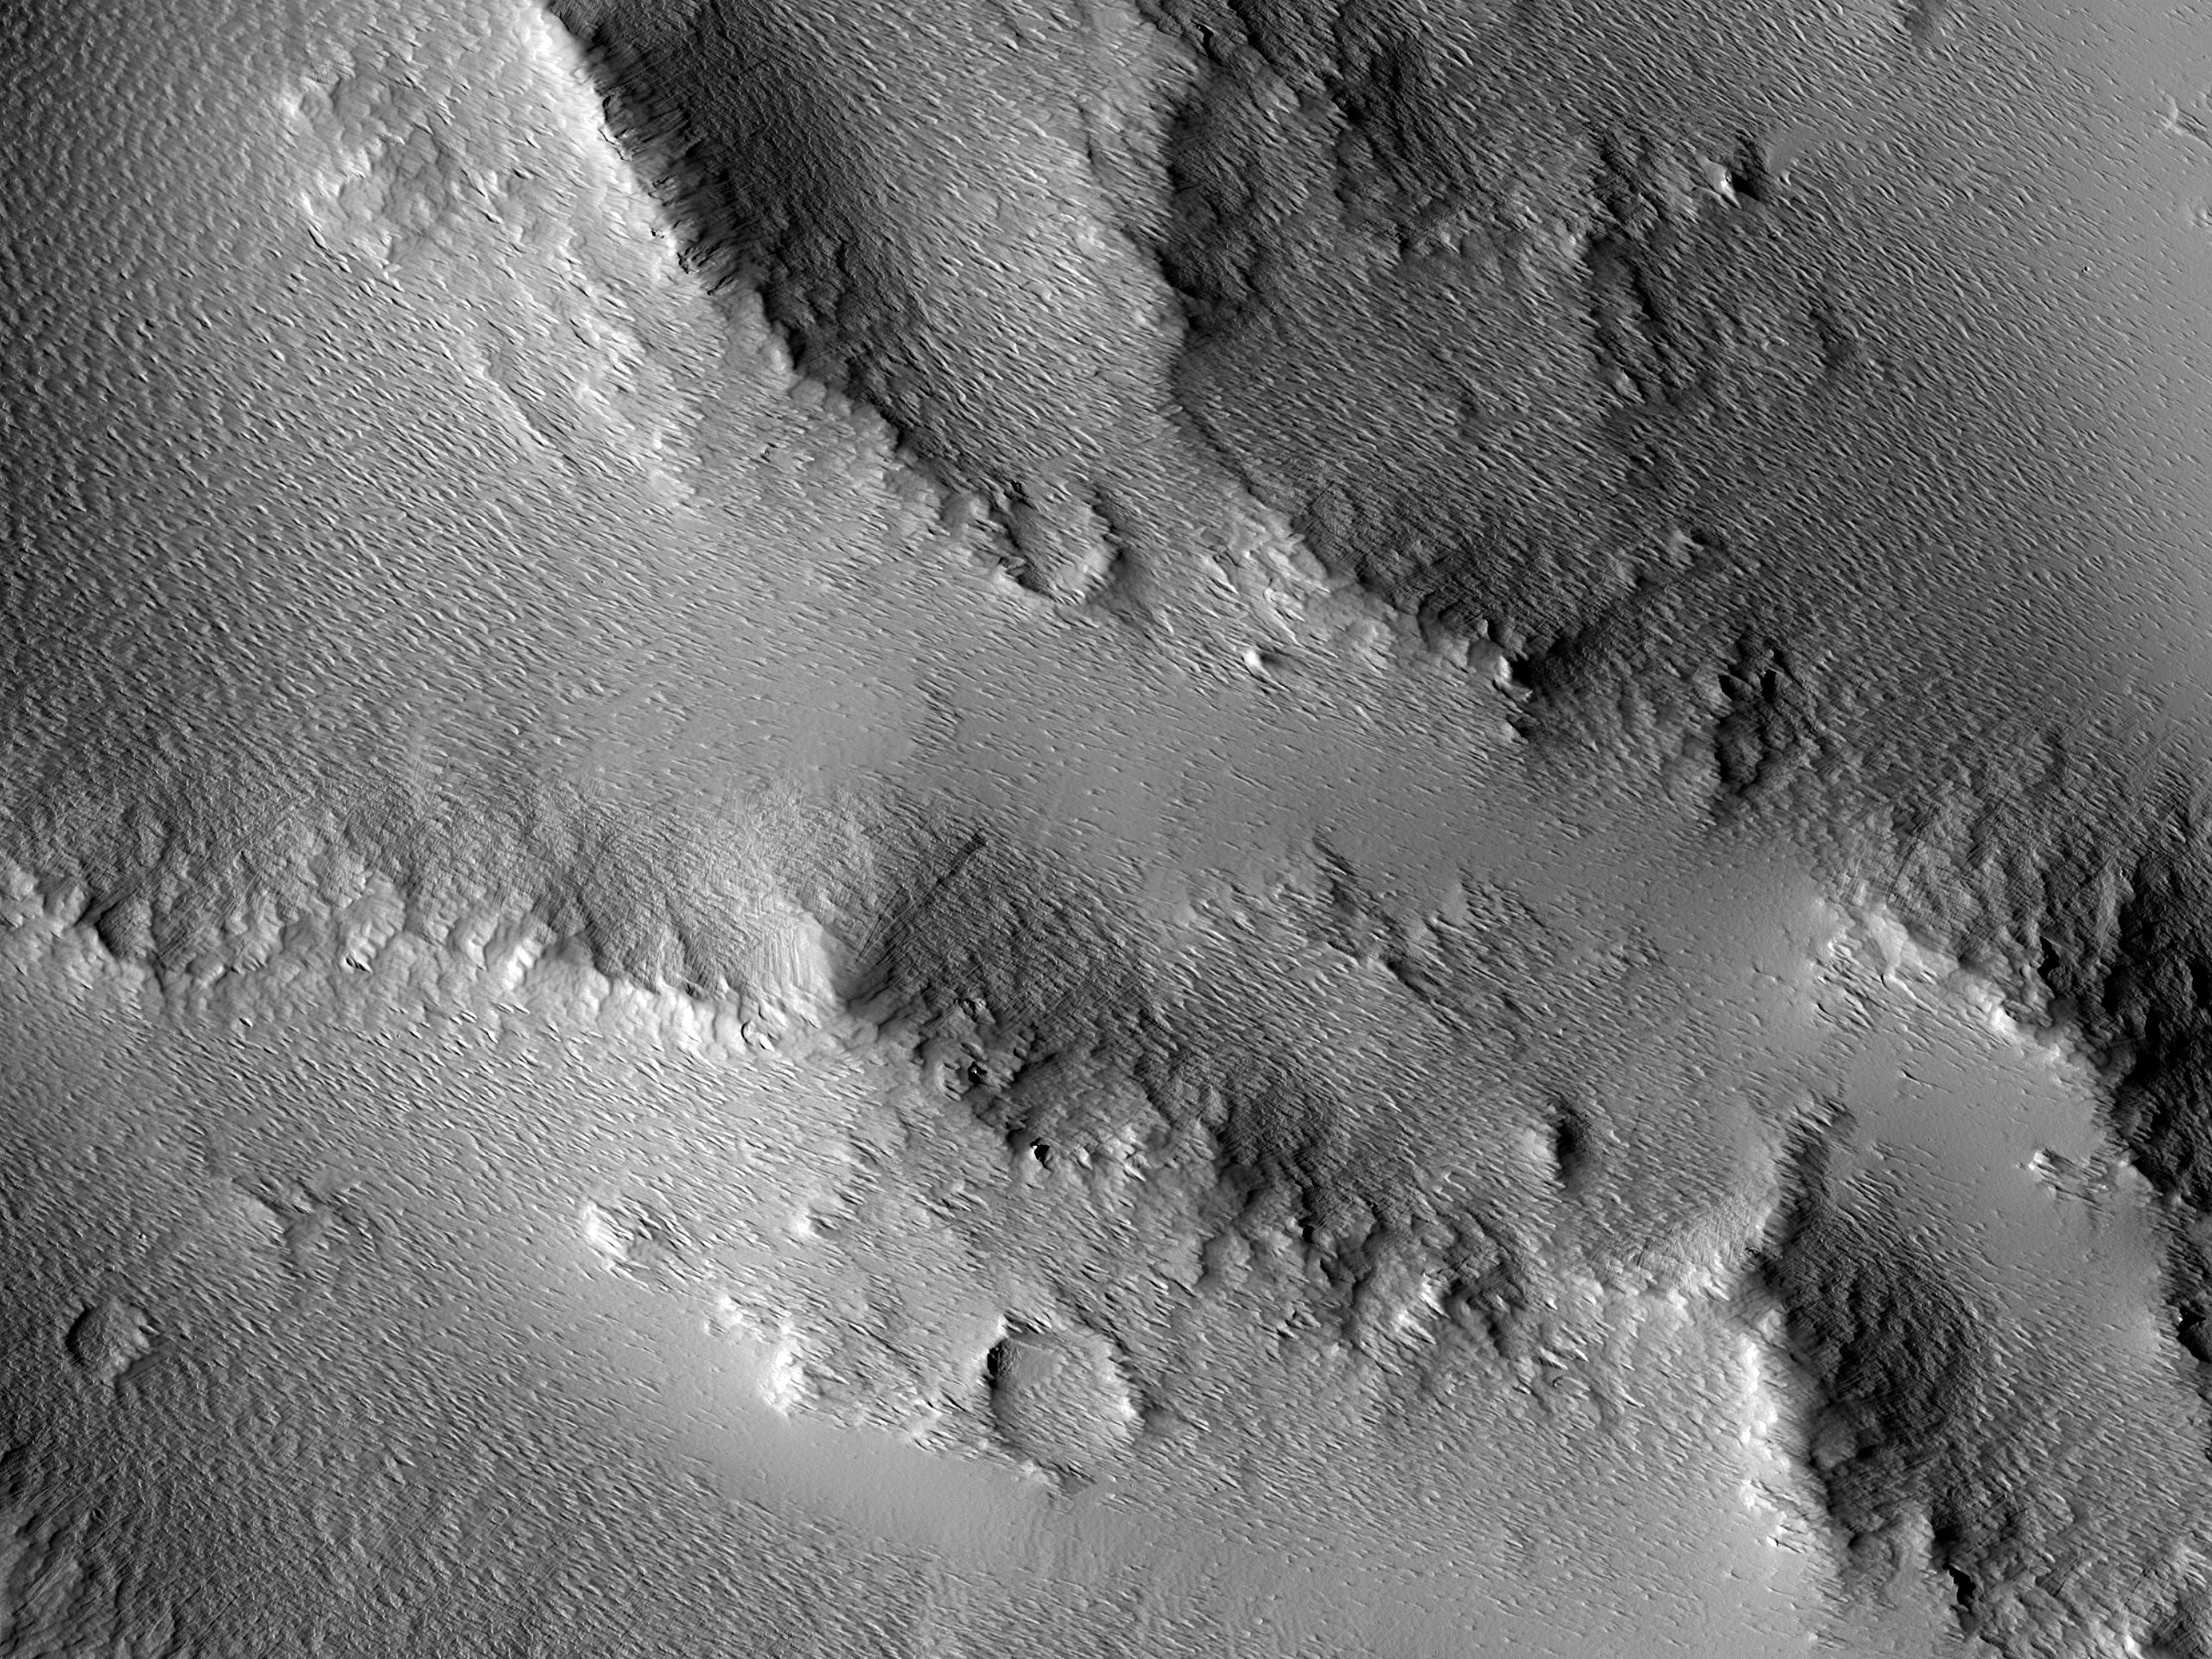 A Crater Wall in Ulysses Patera